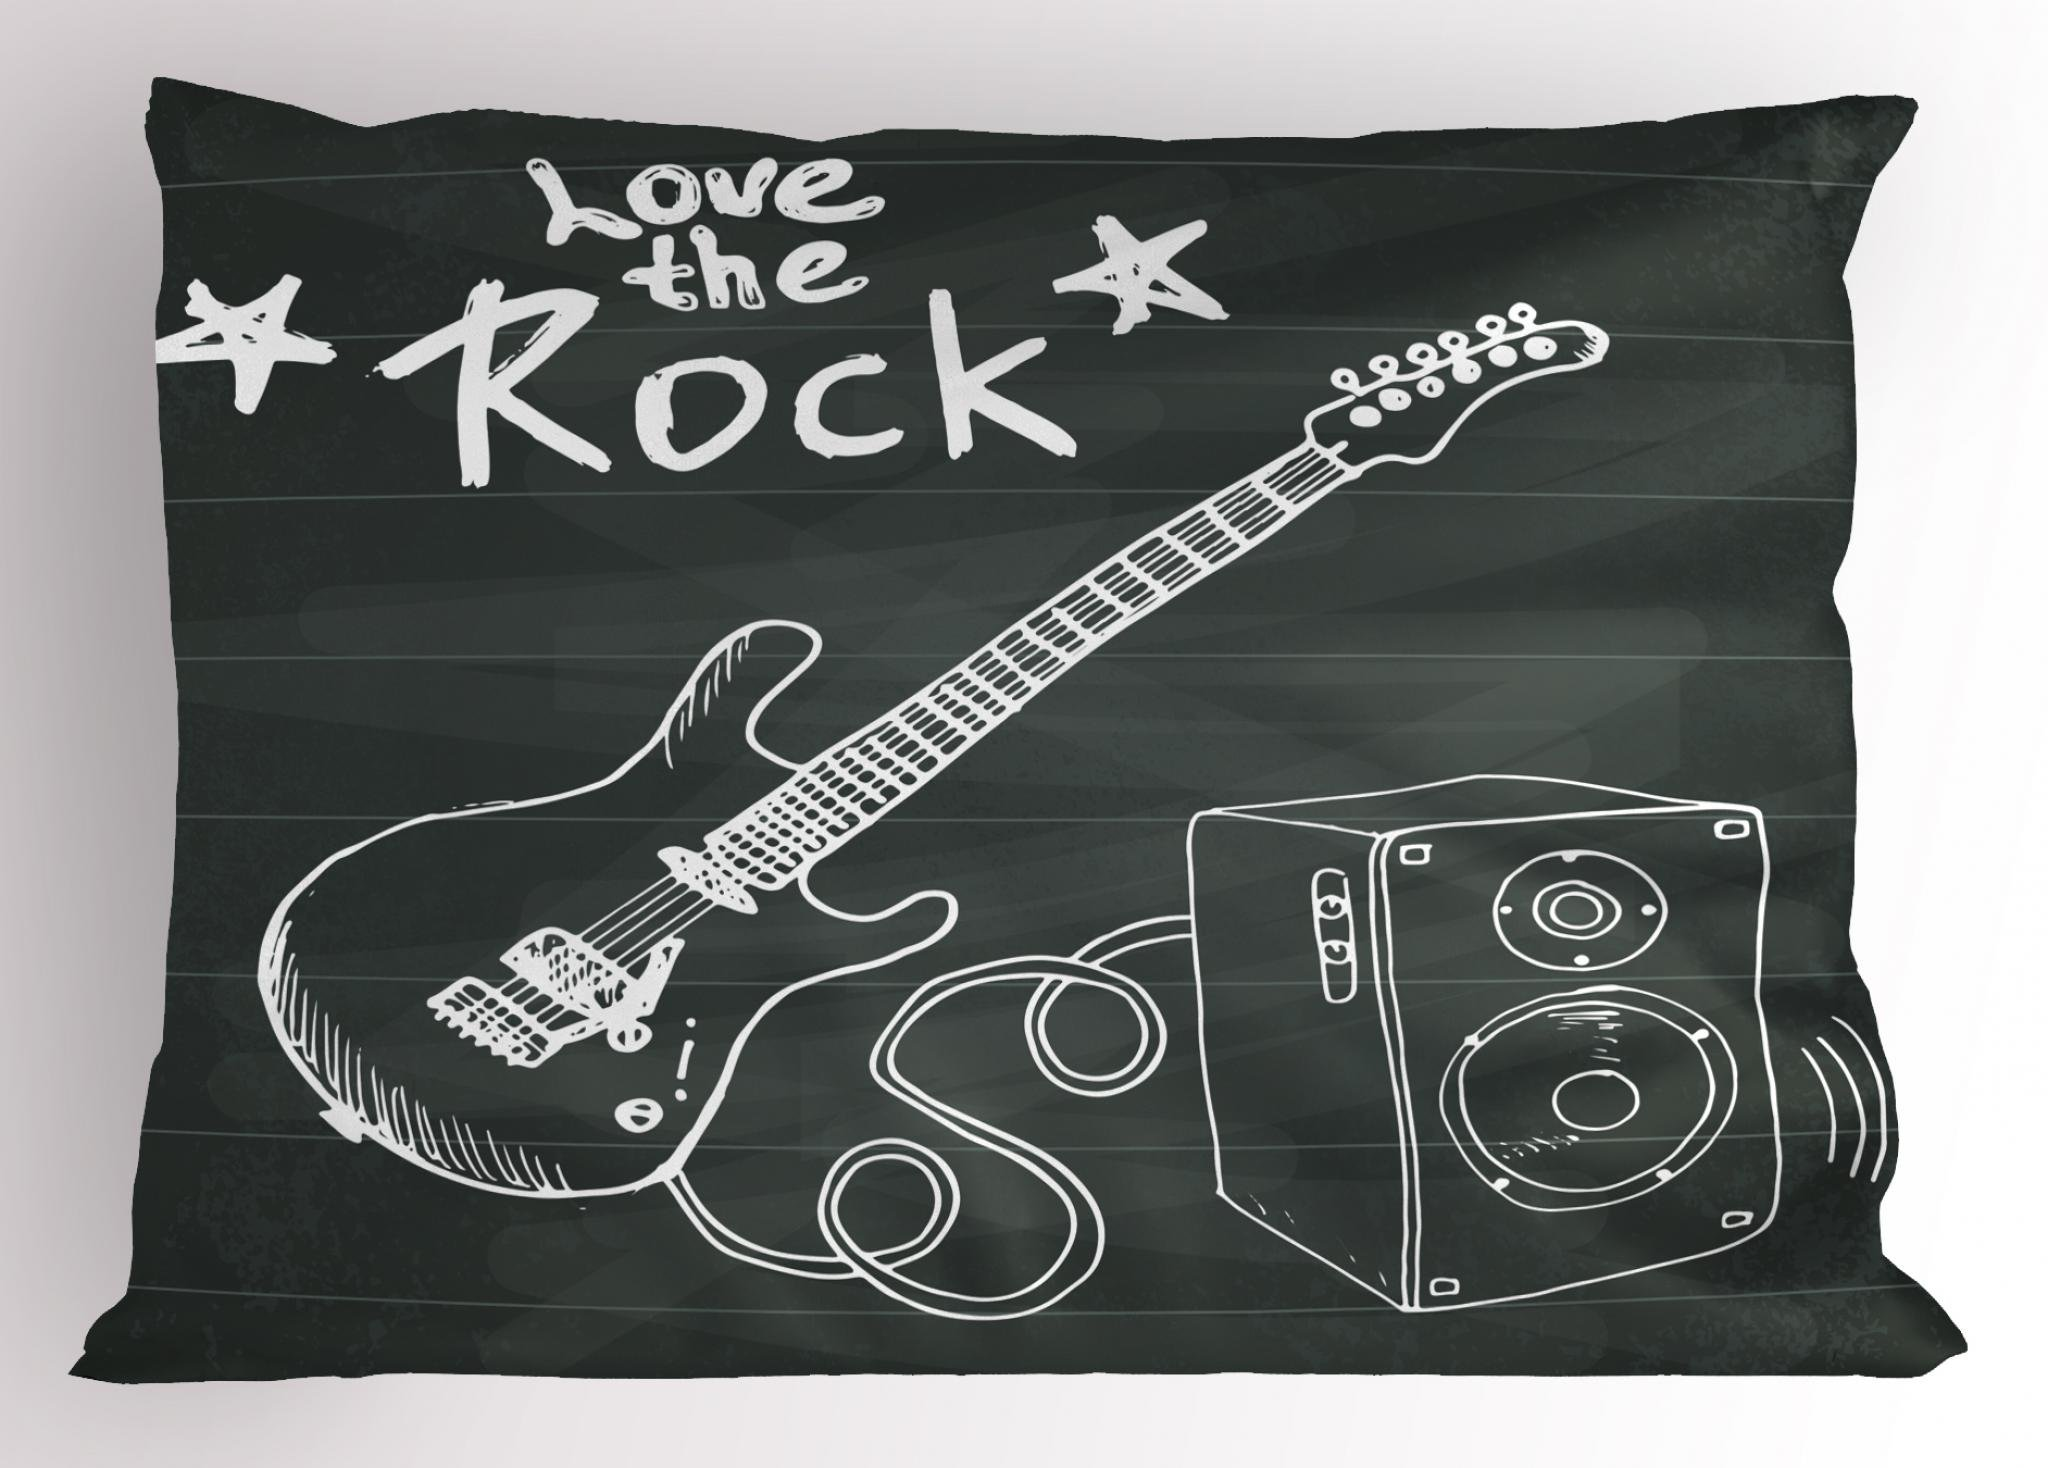 Ambesonne Guitar Pillow Sham, Love The Rock Music Themed Sketch Art Sound Box and Text on Chalkboard, Decorative Standard Size Printed Pillowcase, 26 X 20 Inches, Charcoal Grey White